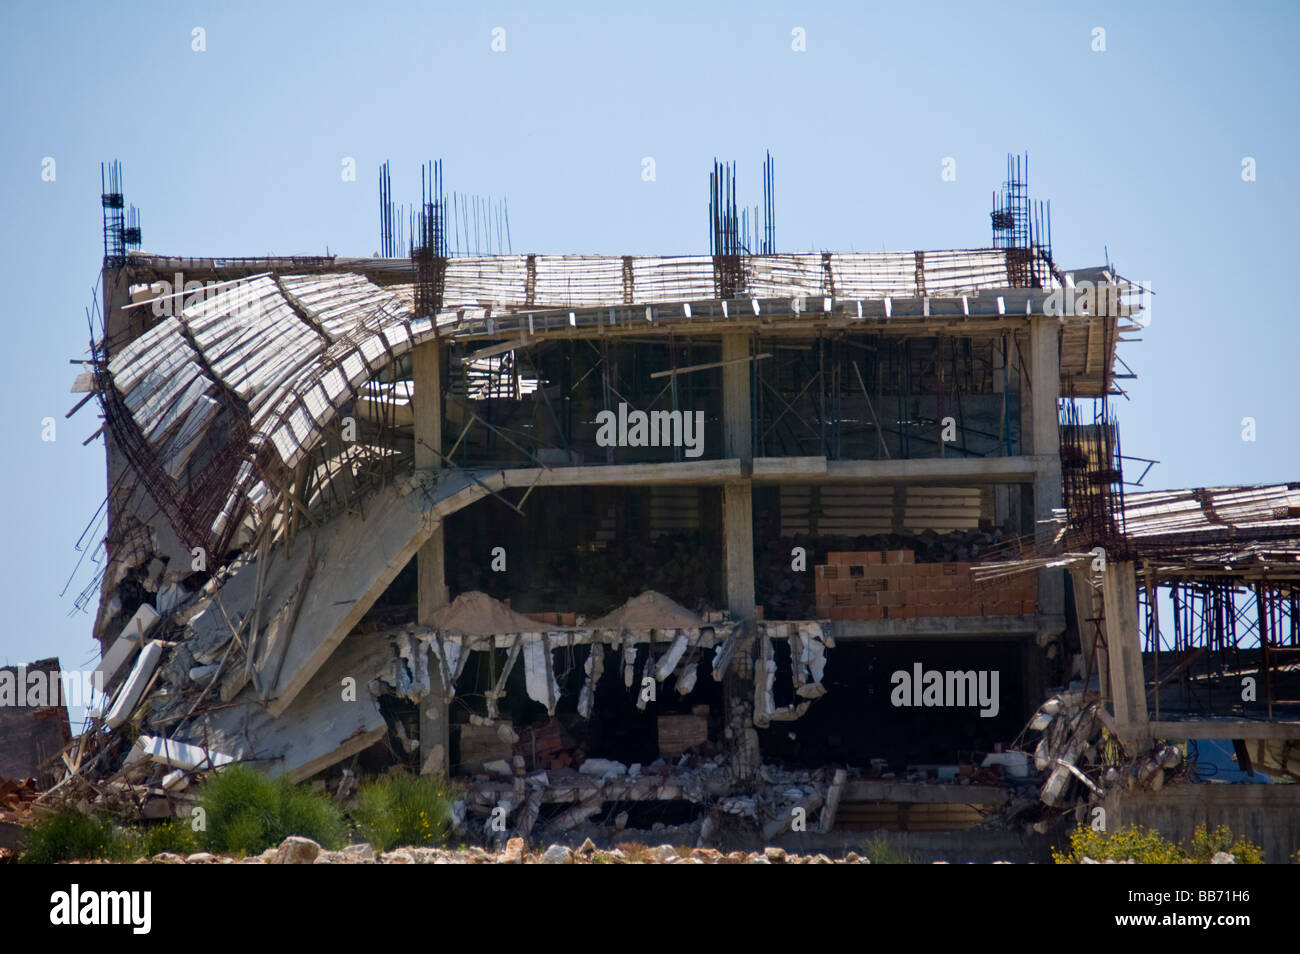 Illegally constructed apartment building partially demolished in city of Saranda Republic of Albania - Stock Image